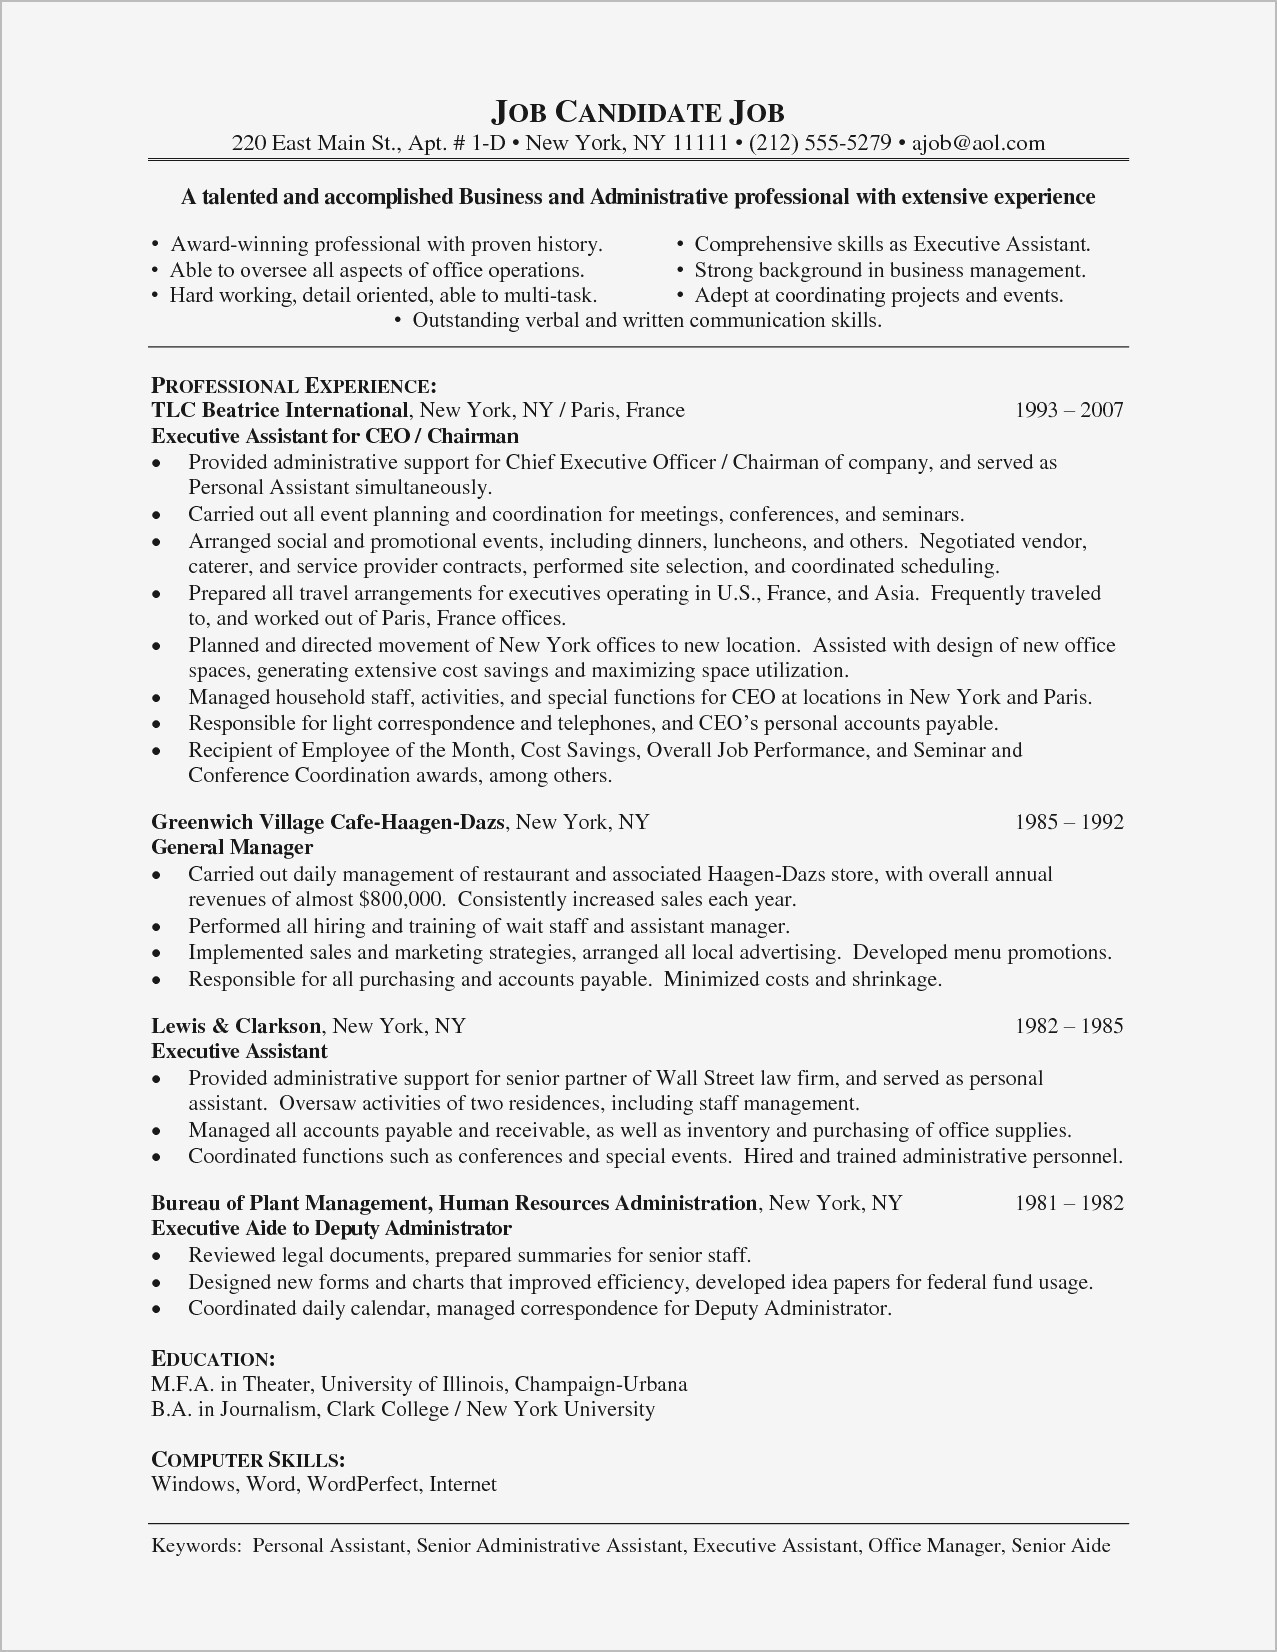 Pilot Resume Template - Tamu Resume Template Luxury Pilot Resume Luxury Resume for Graphers